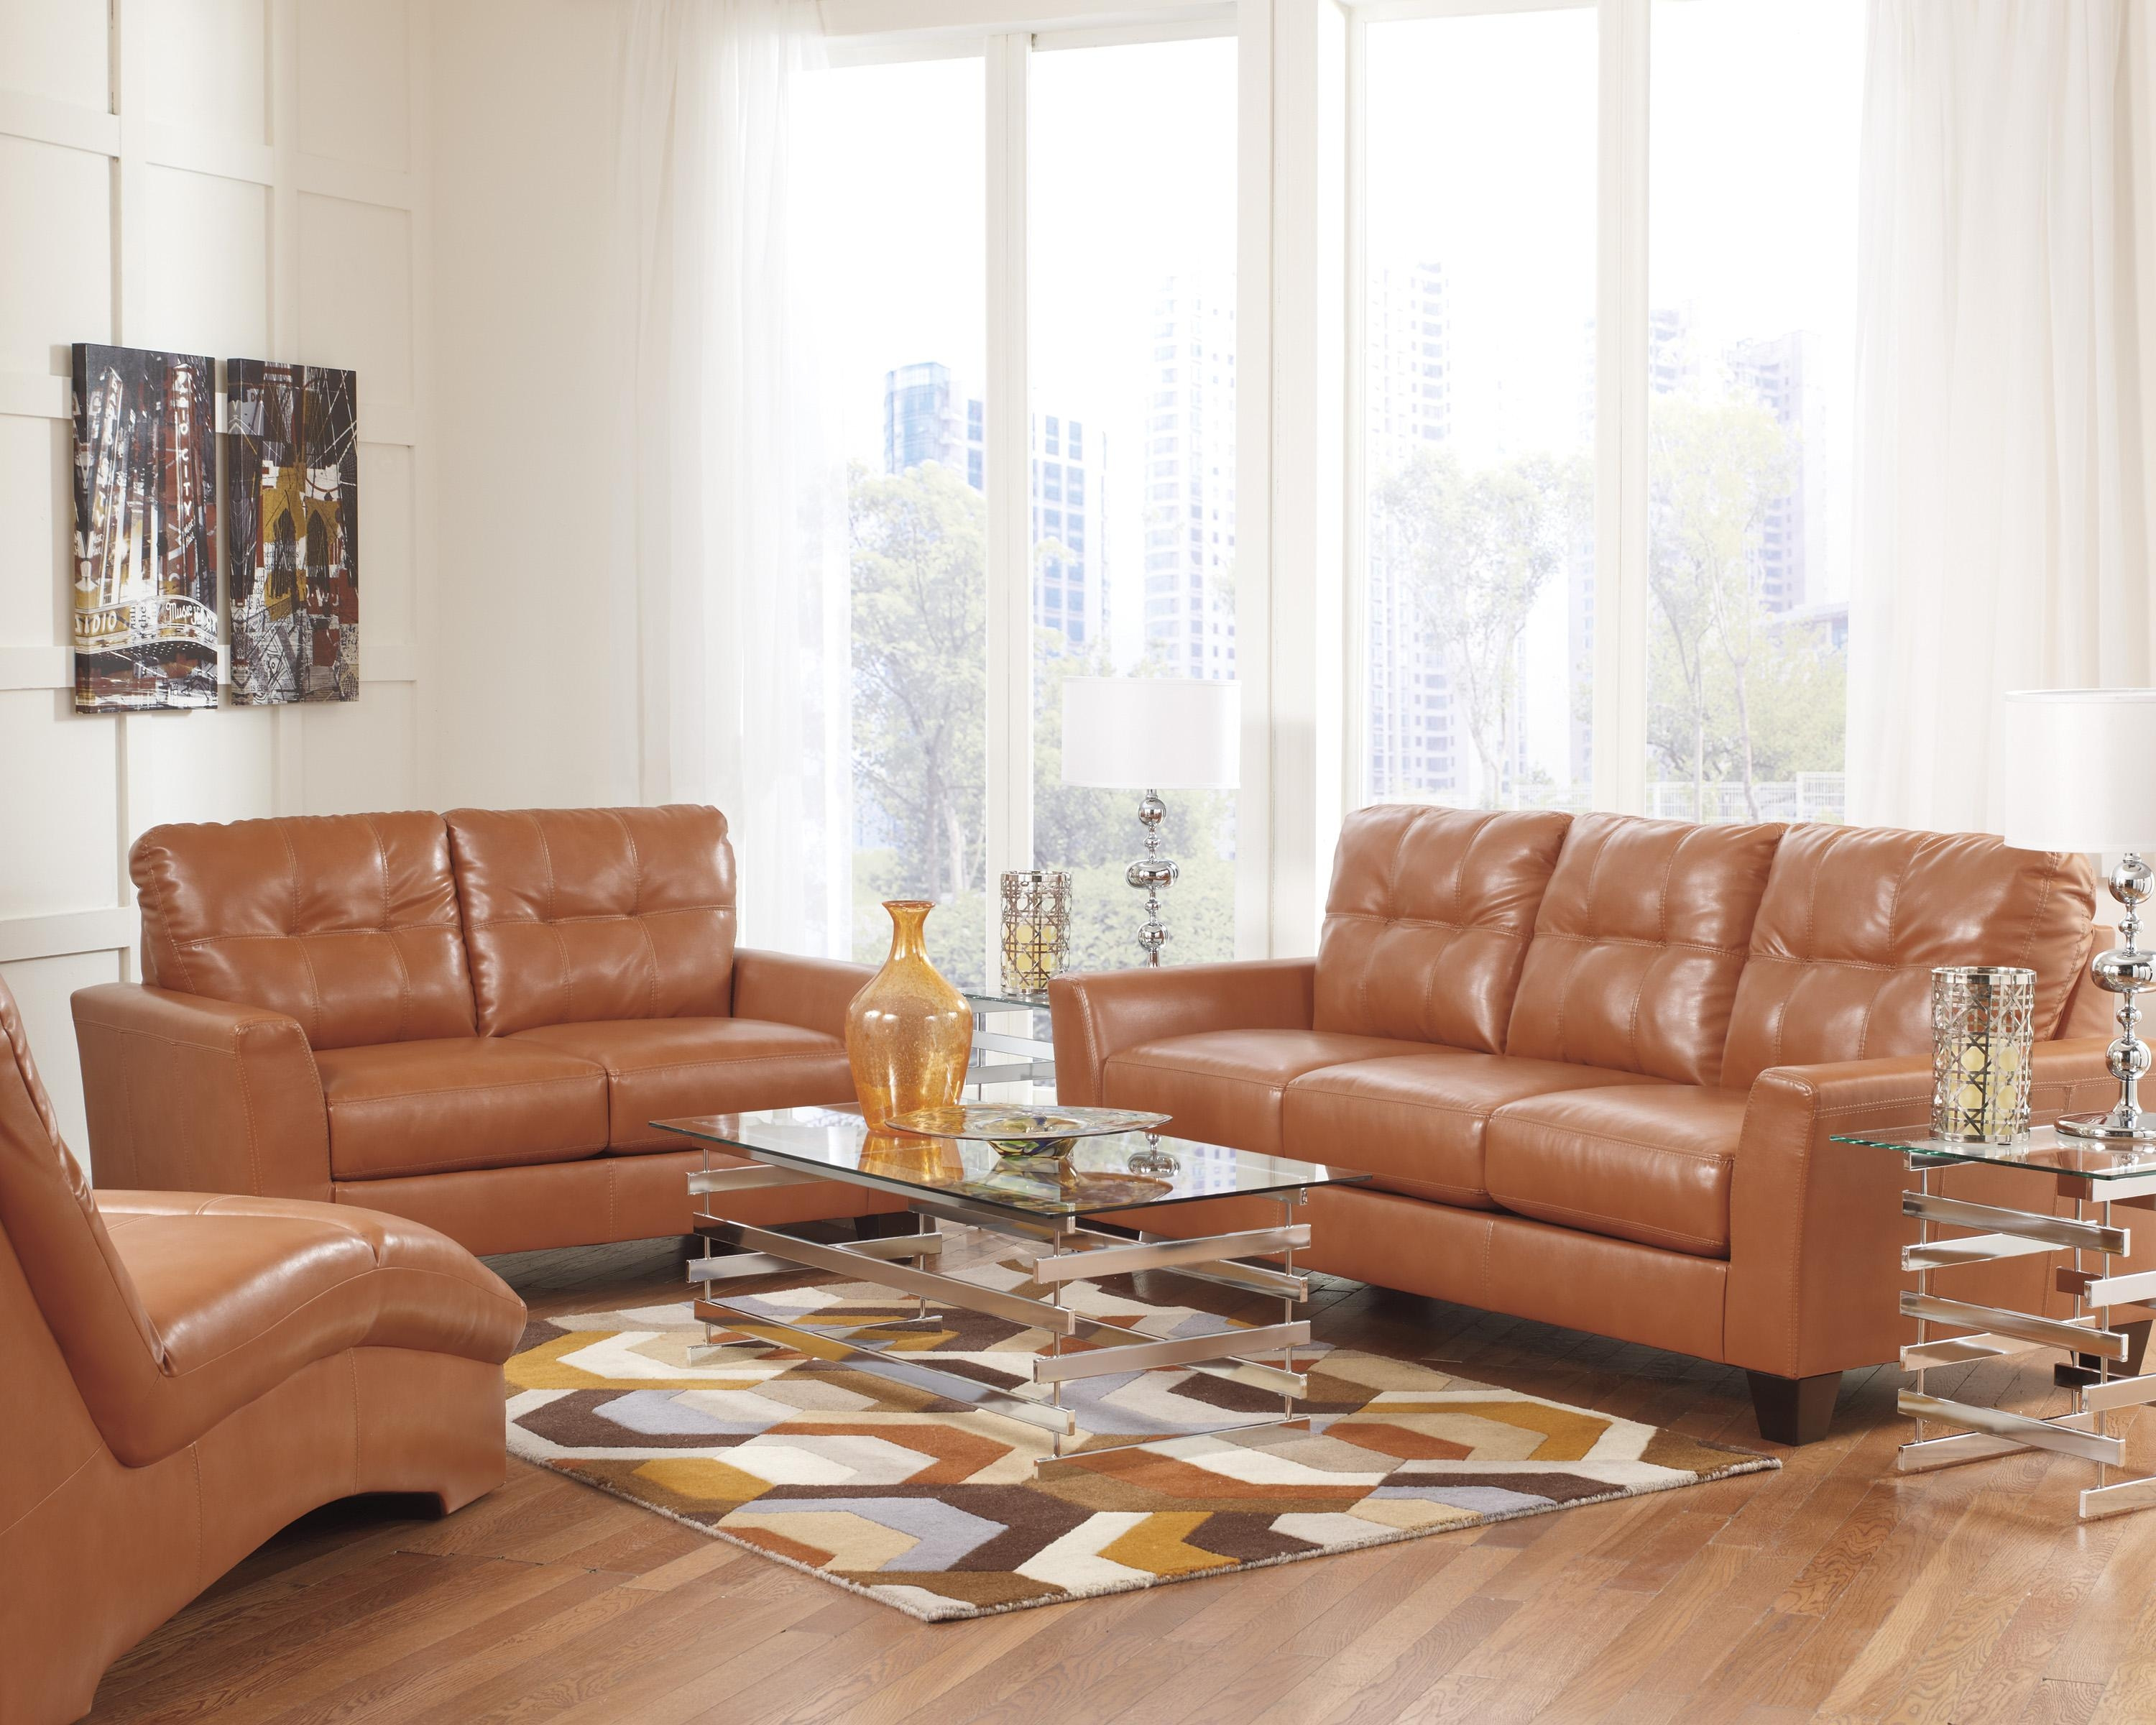 Living Room With Colorful Furniture And Black Walls Burnt Orange Pertaining To Burnt Orange Sofas (Image 7 of 20)